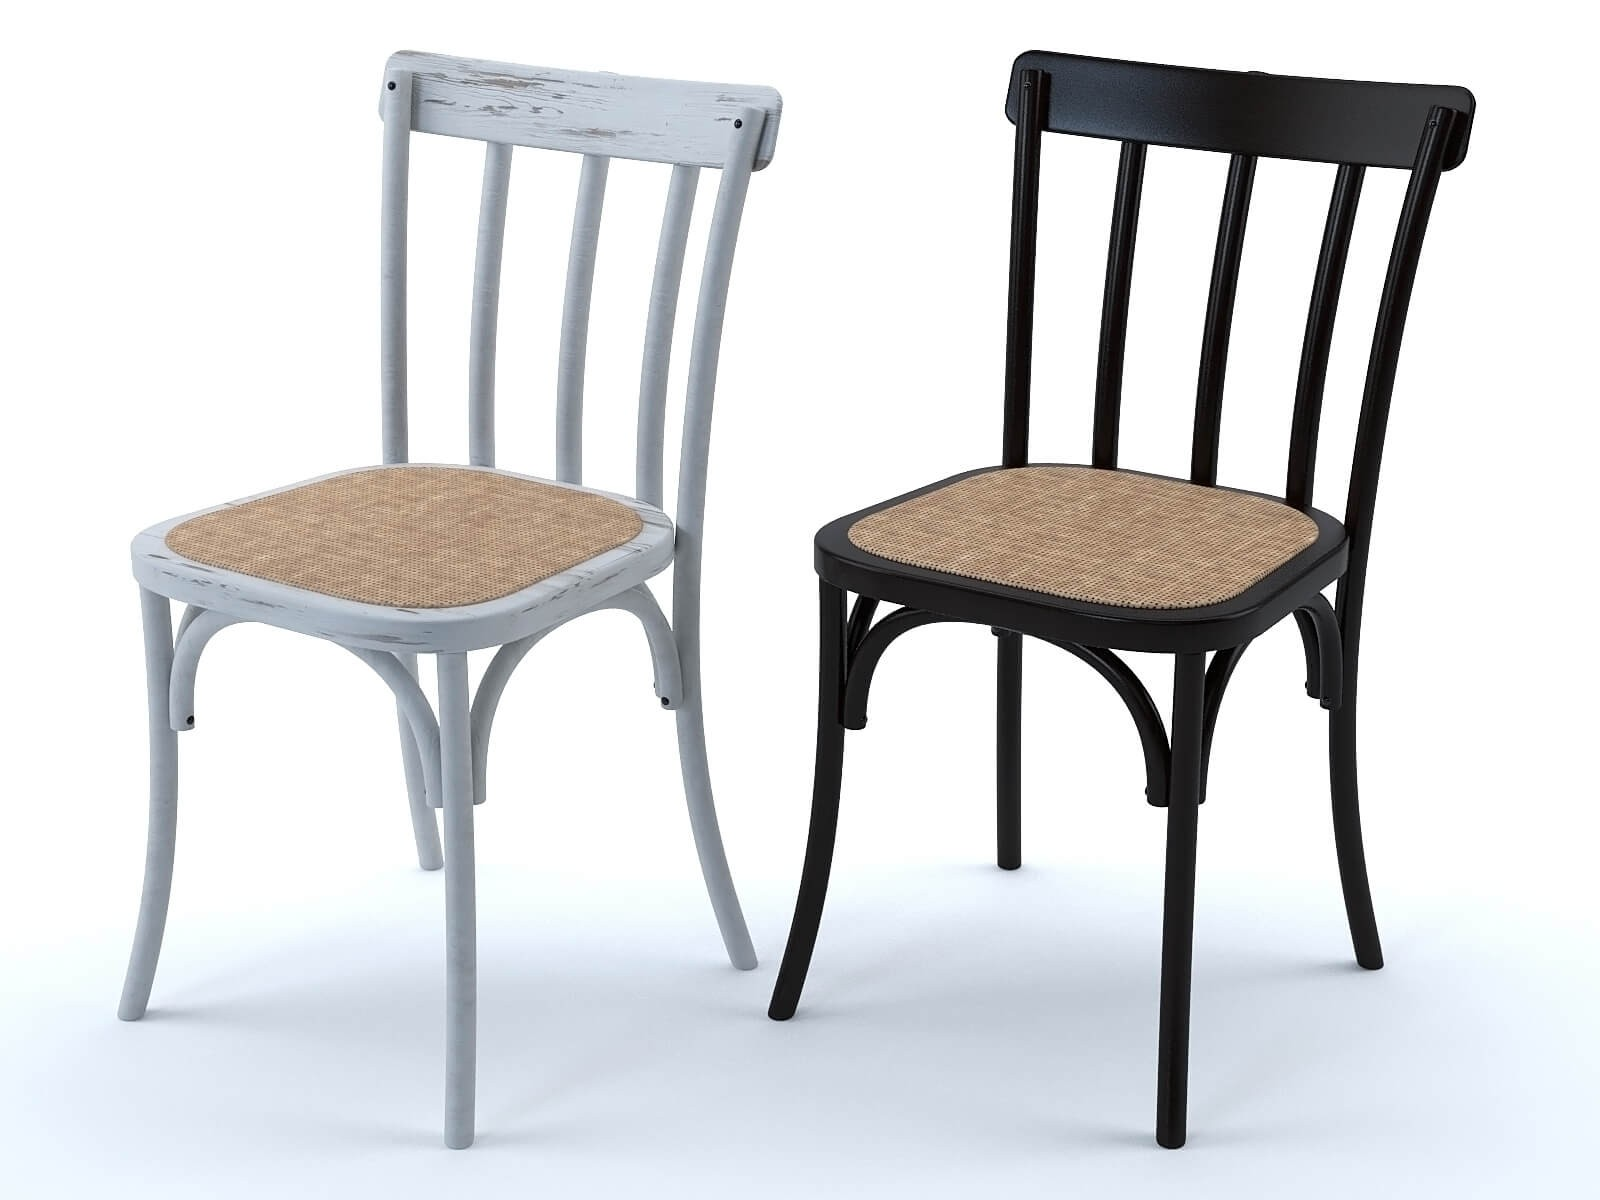 Bistrot chairs (set of 2)